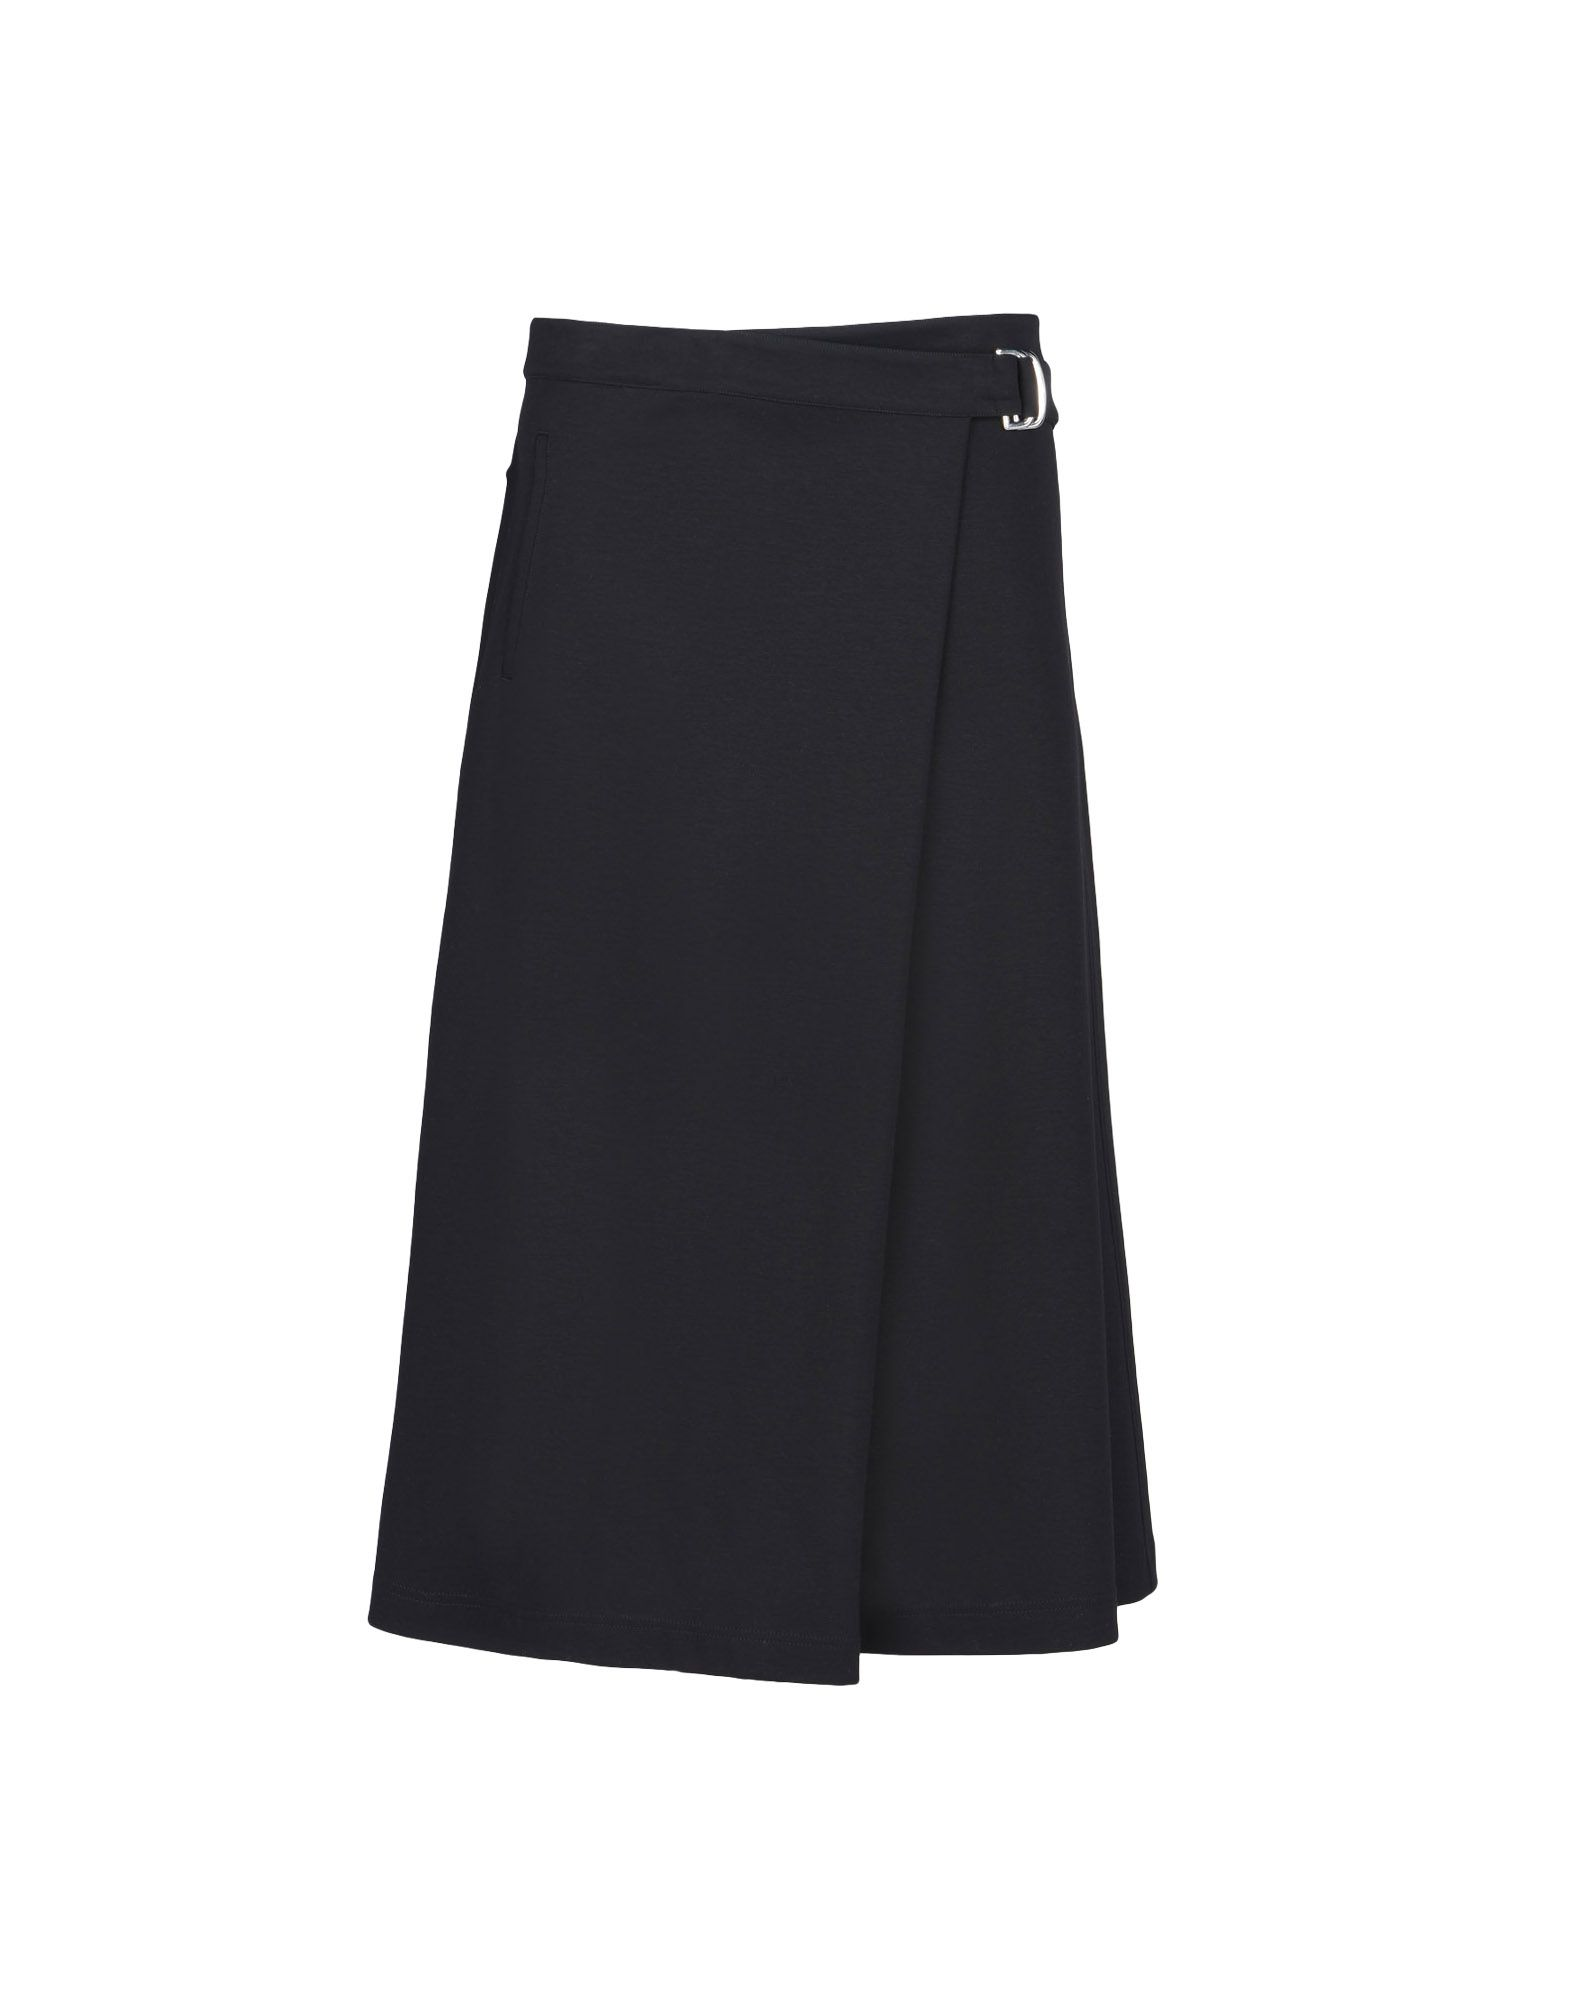 Y 3 LIGHT TRACK SKIRT 34 Length Skirts for Women | Adidas Y-3 ...